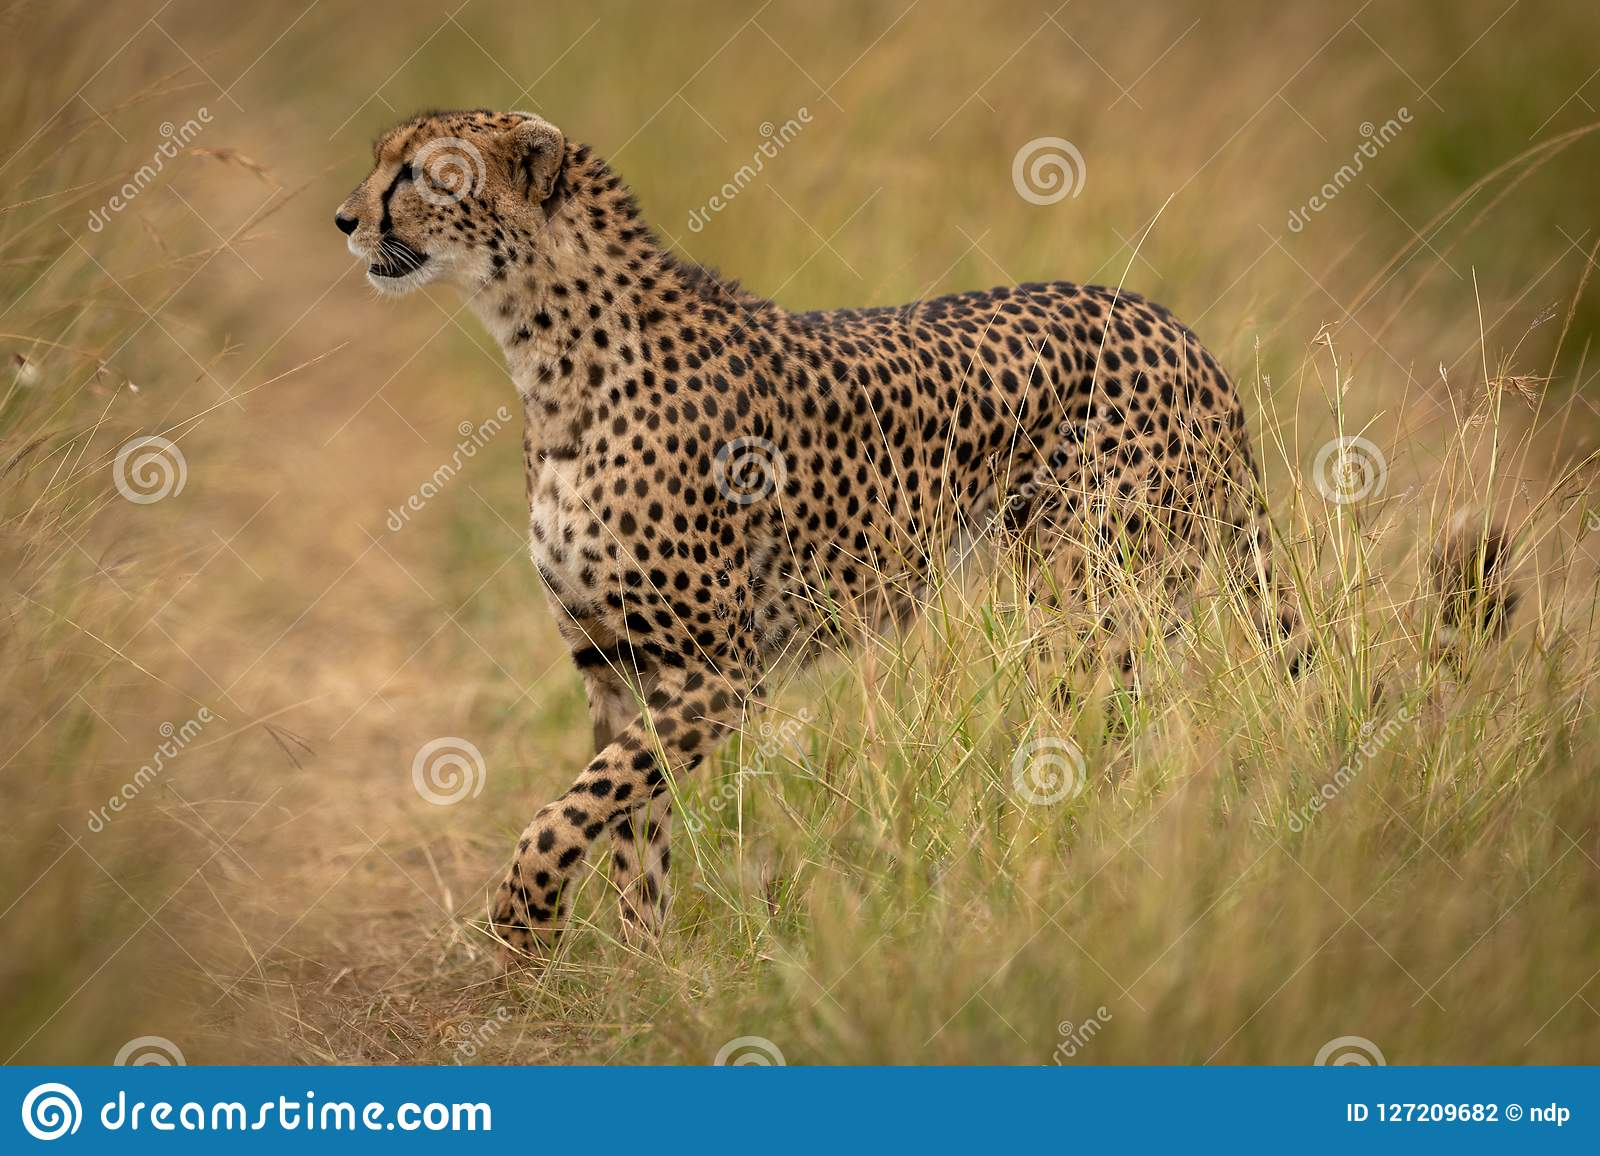 Cheetah crosses path through grass on savannah